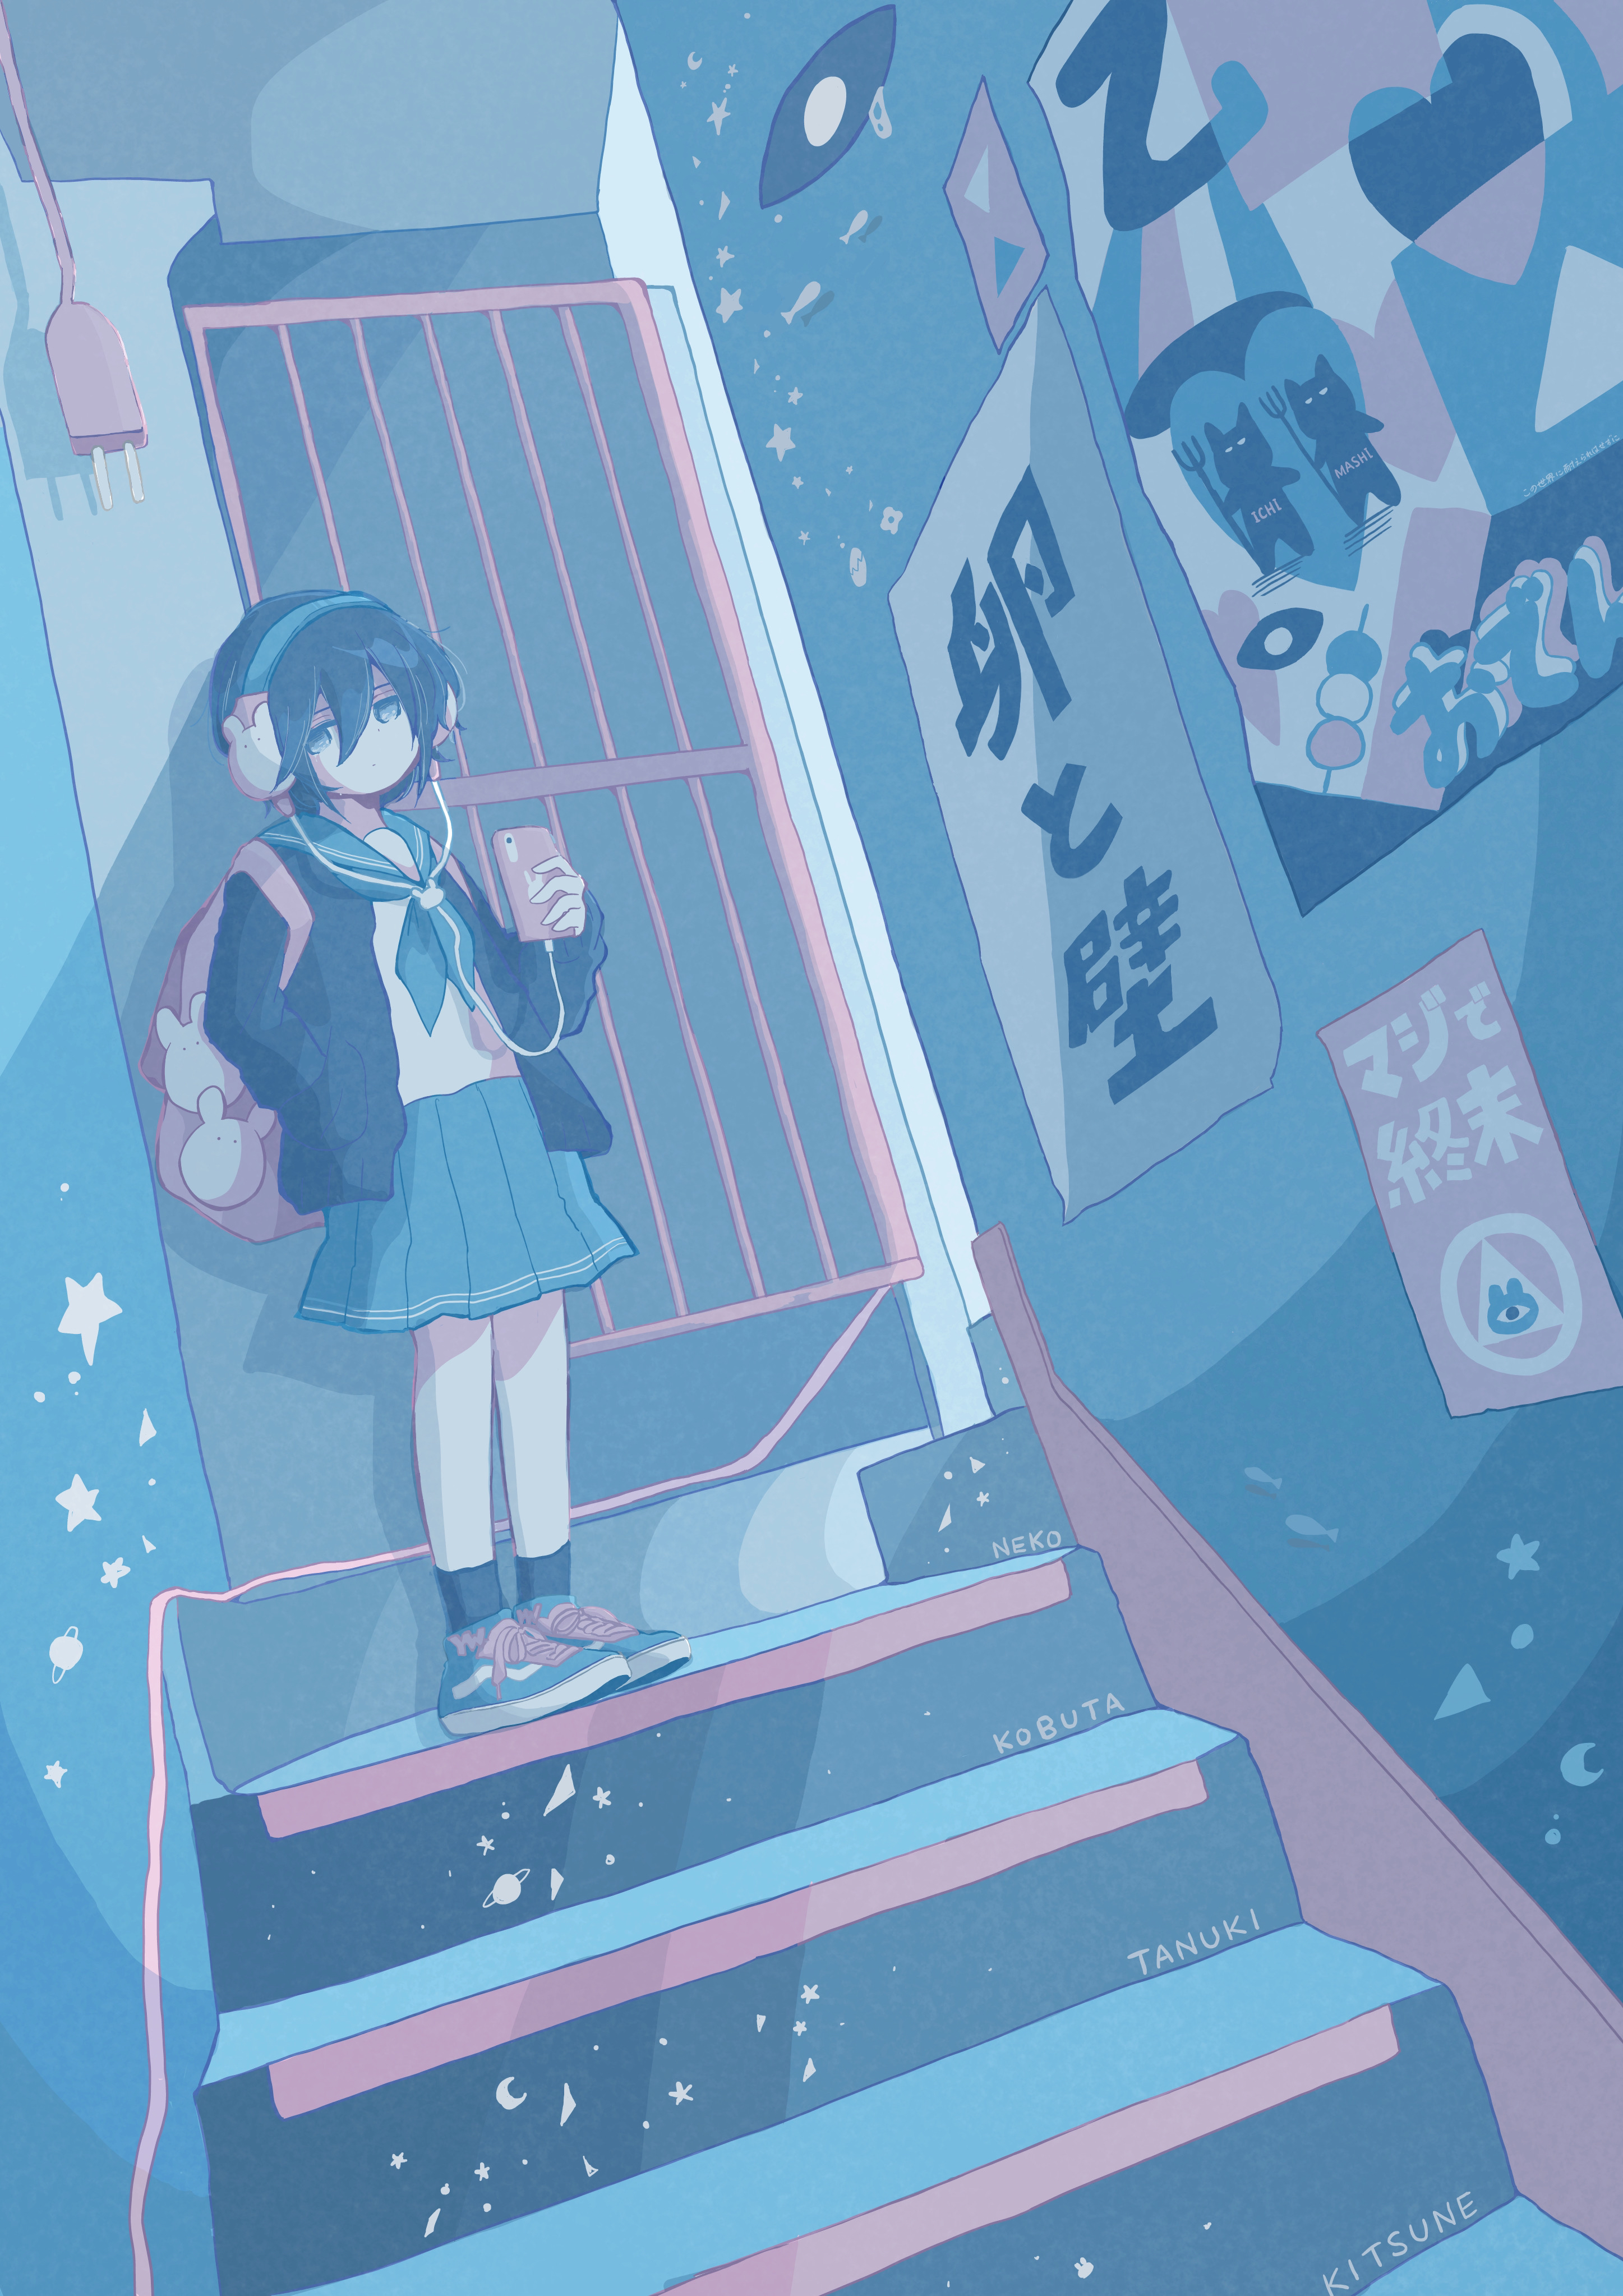 On the stairs. [Original]